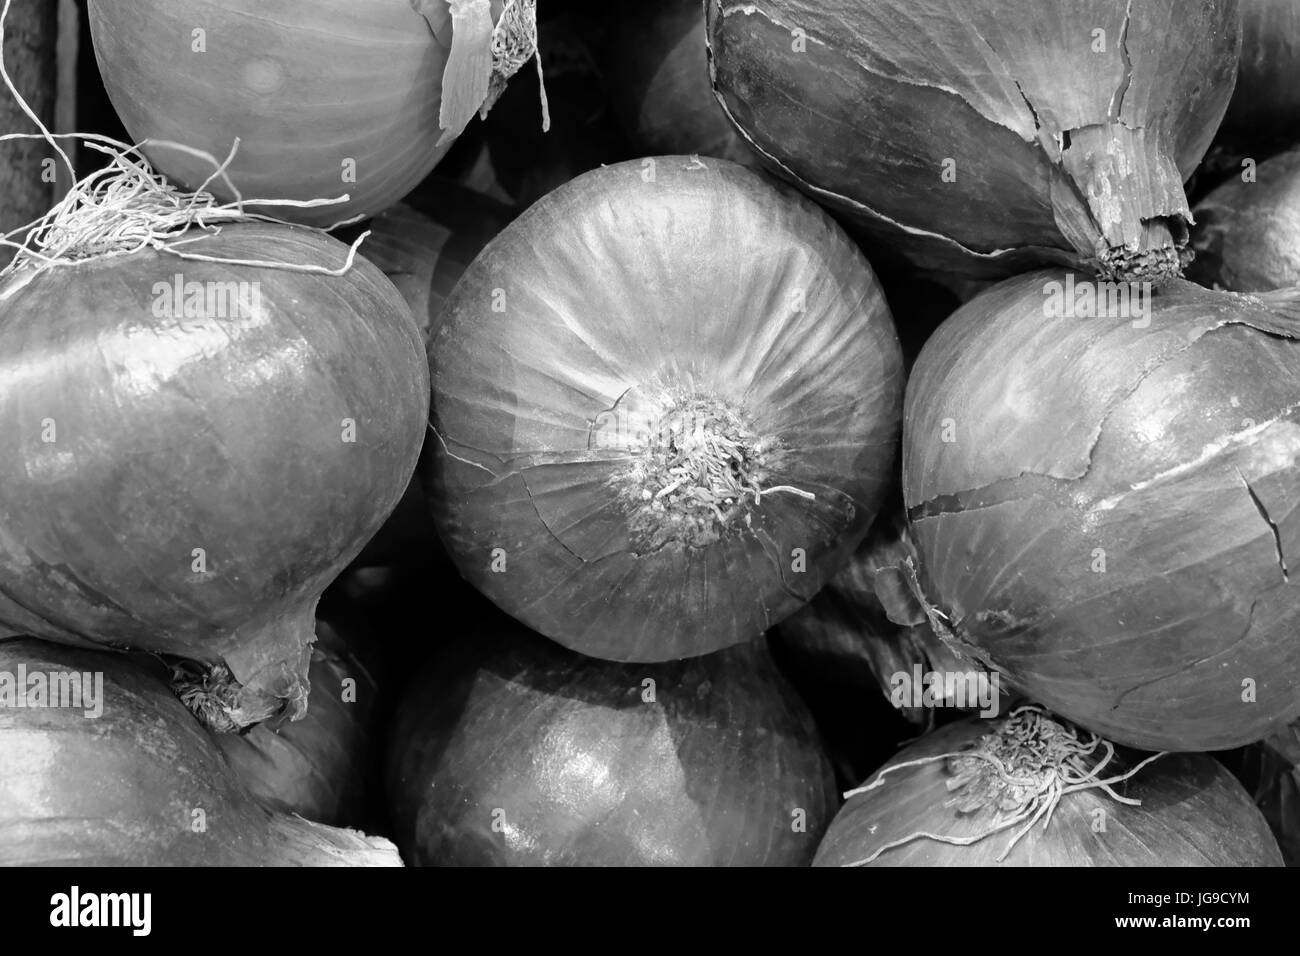 Black and white still life of onions - Stock Image